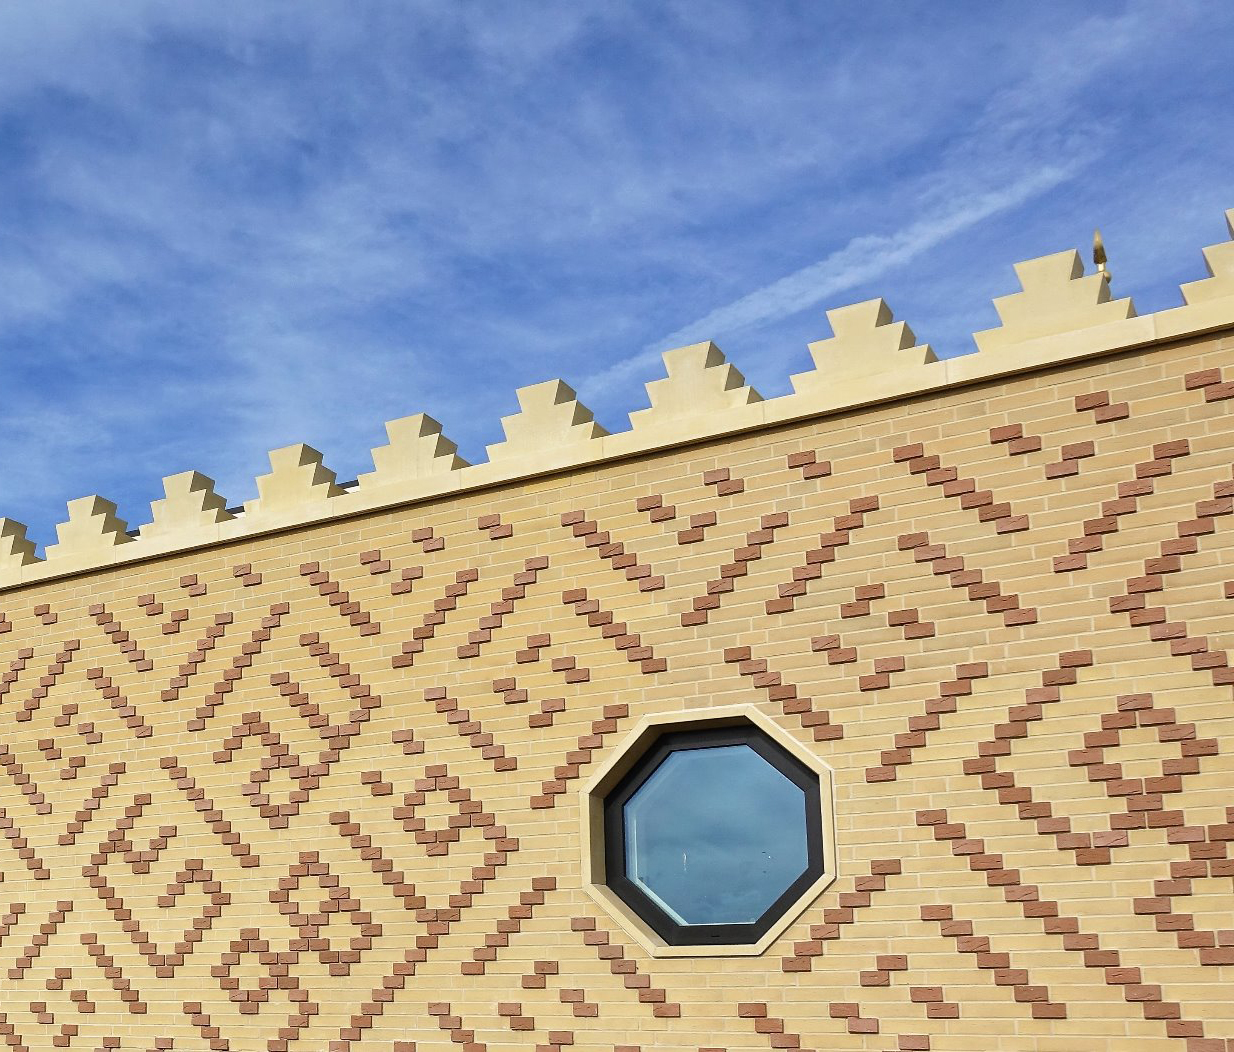 Brick tiles and crenulations. The Cambridge Mosque by Marks Barfield Architects